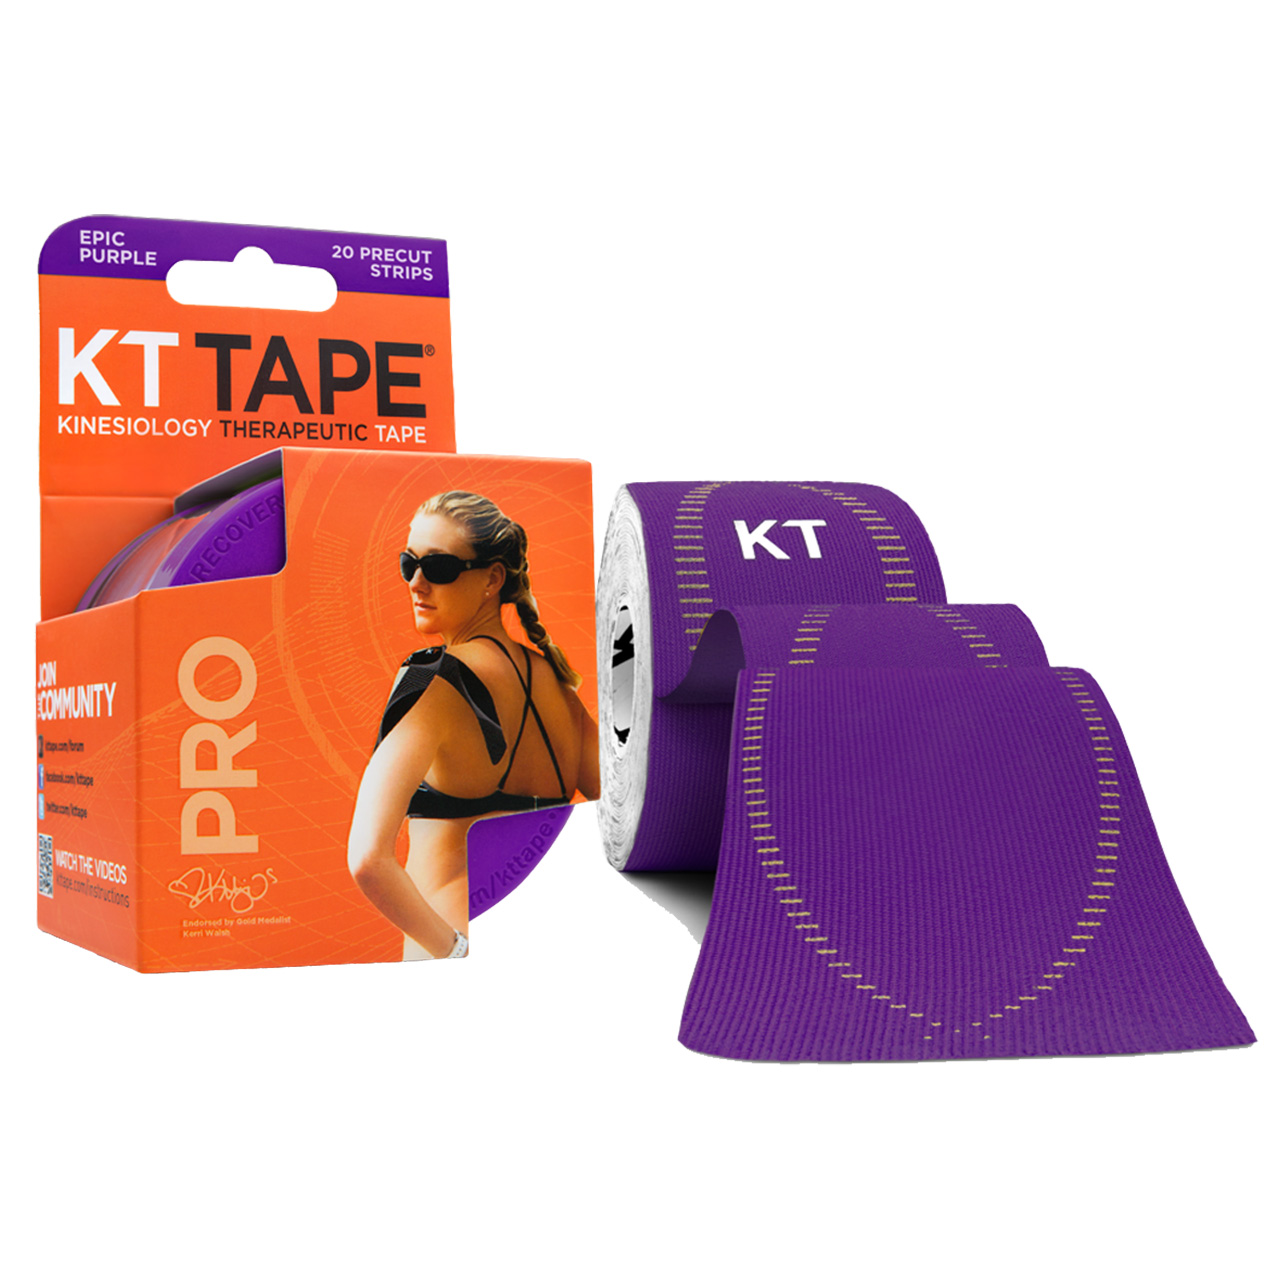 KT TAPE PRO Synthetic Elastic Kinesiology 20 Pre-Cut 10-Inch Strips Epic Purple